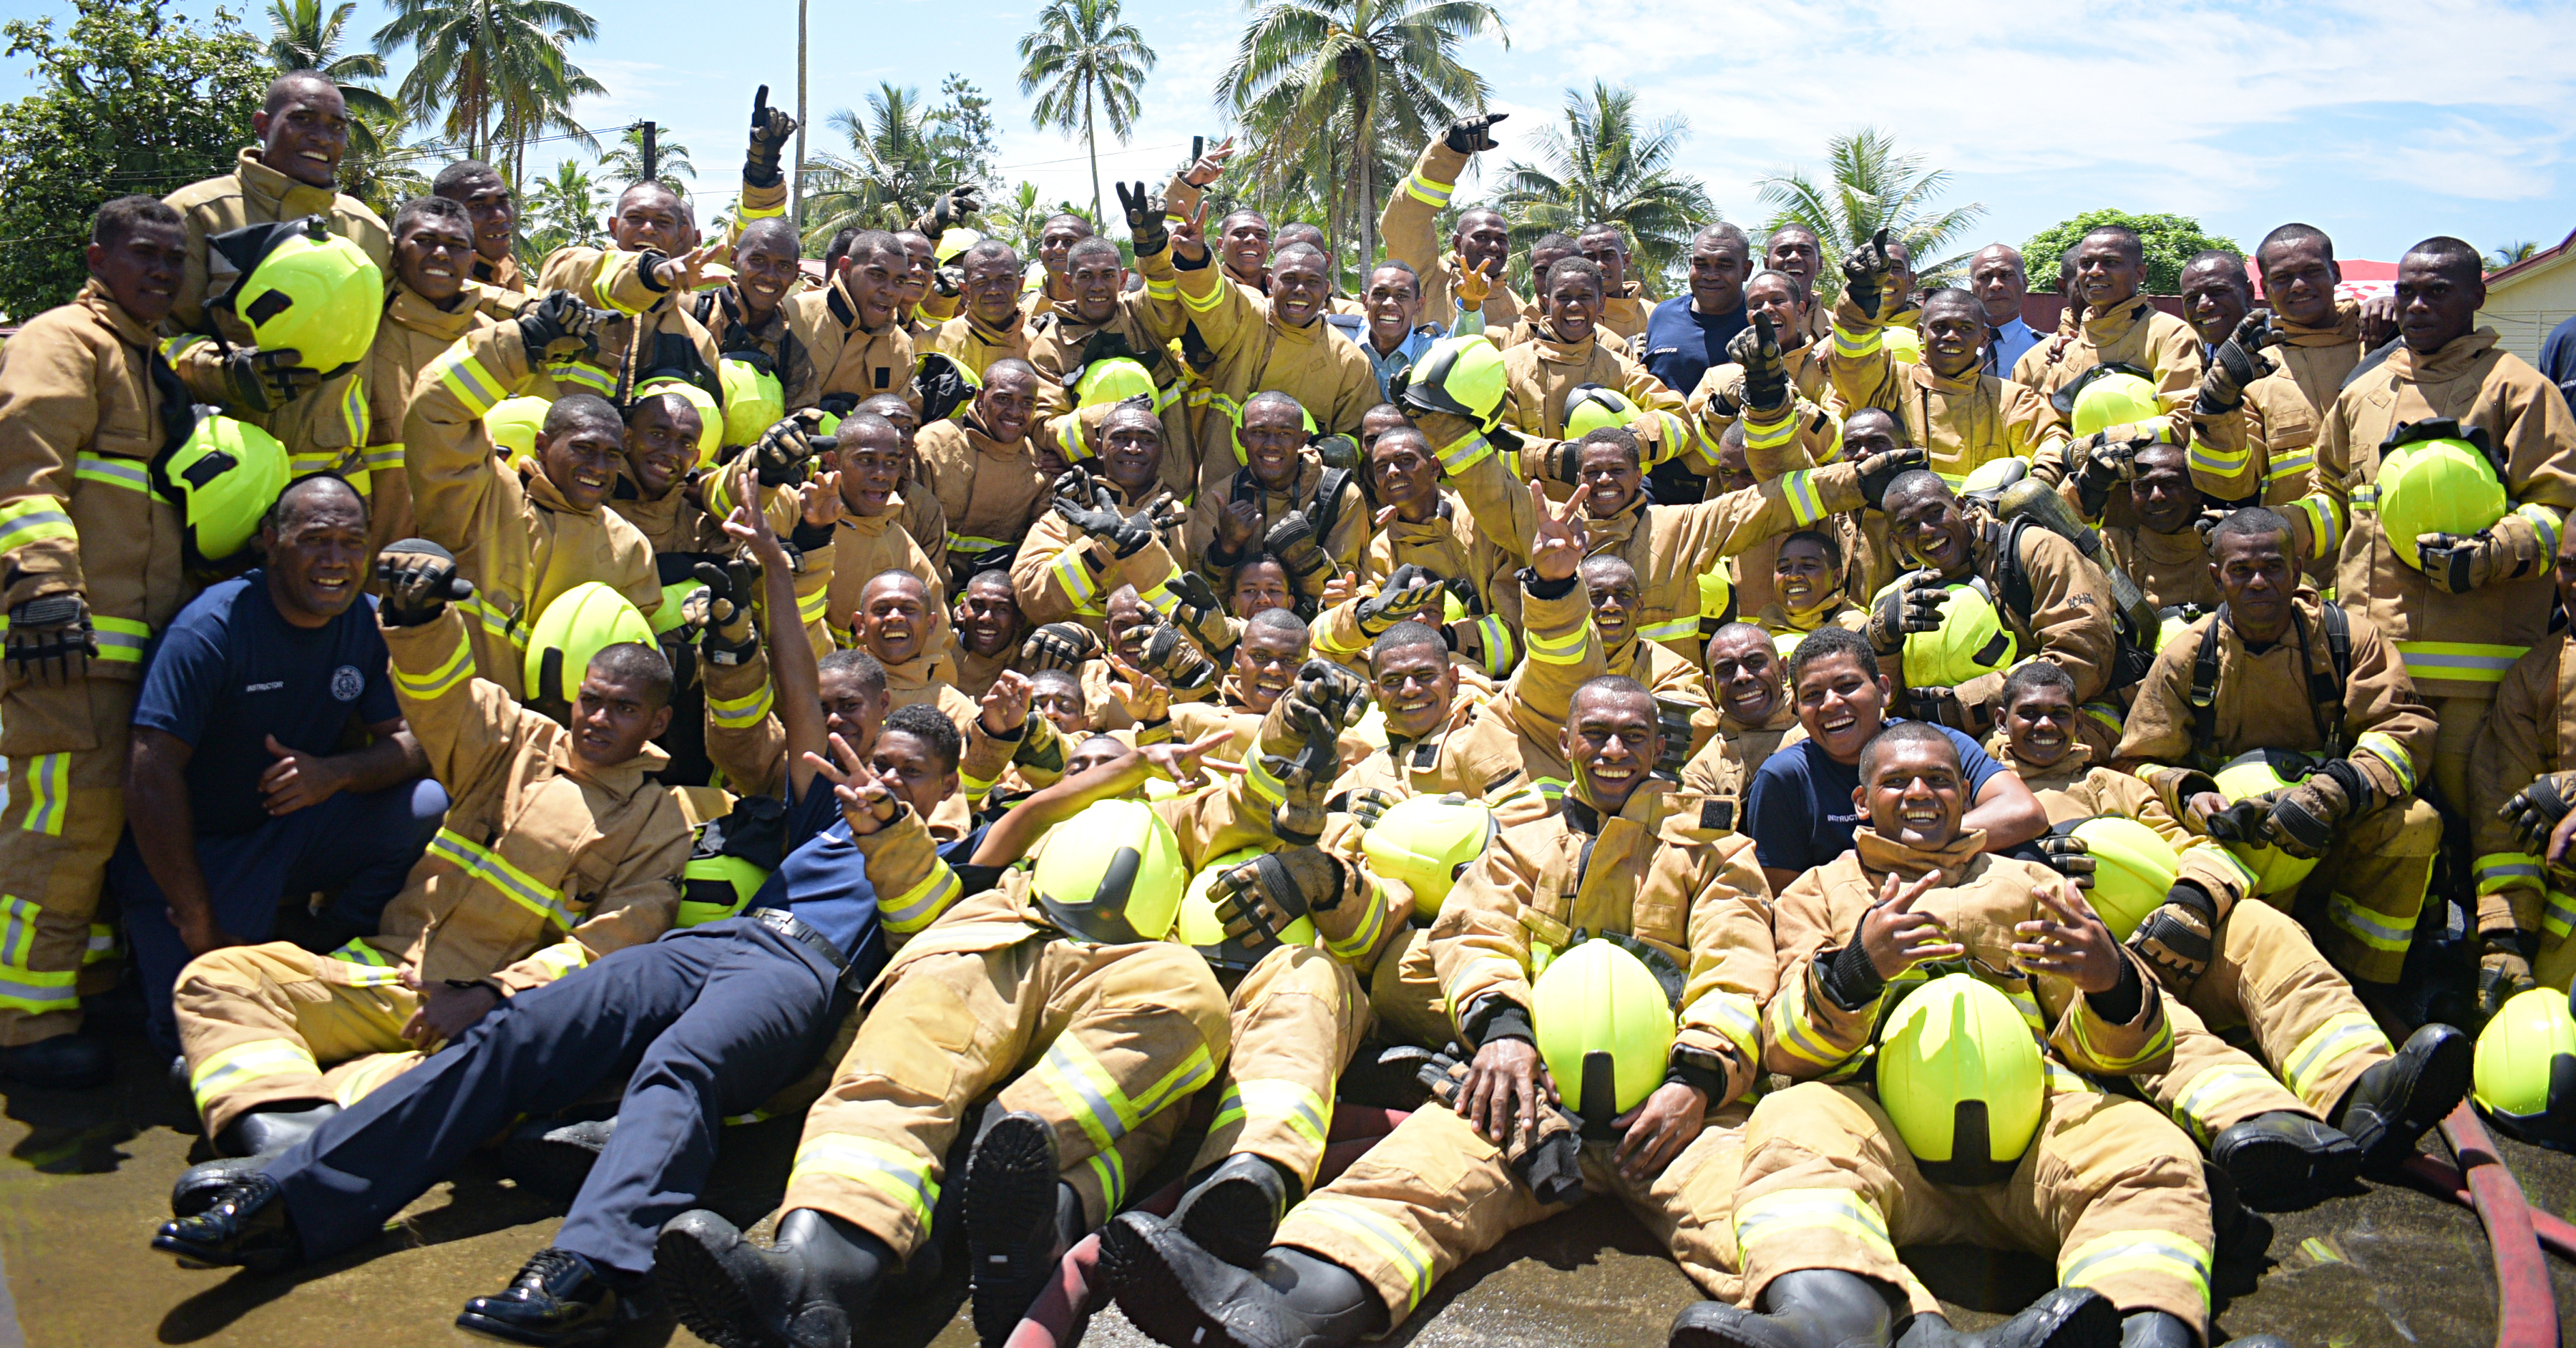 68 new recruits pass out during the National Fire Authority passing out parade at the Navy Training base at Togalevu Veisari, Lami on December 11, 2019. Photo: Ronald Kumar